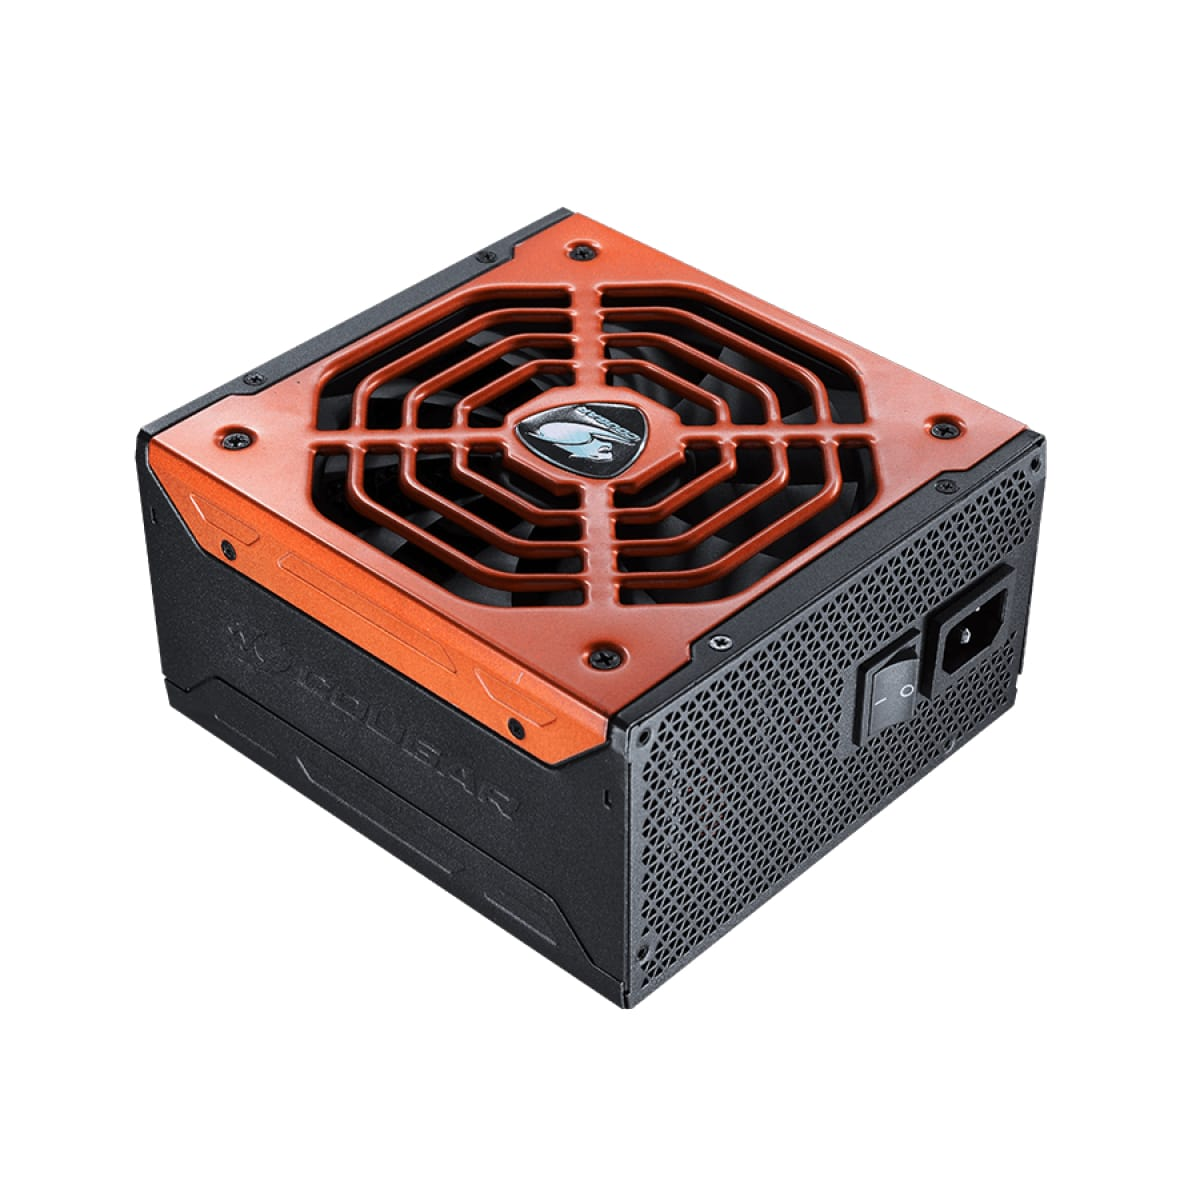 Fonte Cougar BXM700, 700W, 80 Plus Bronze